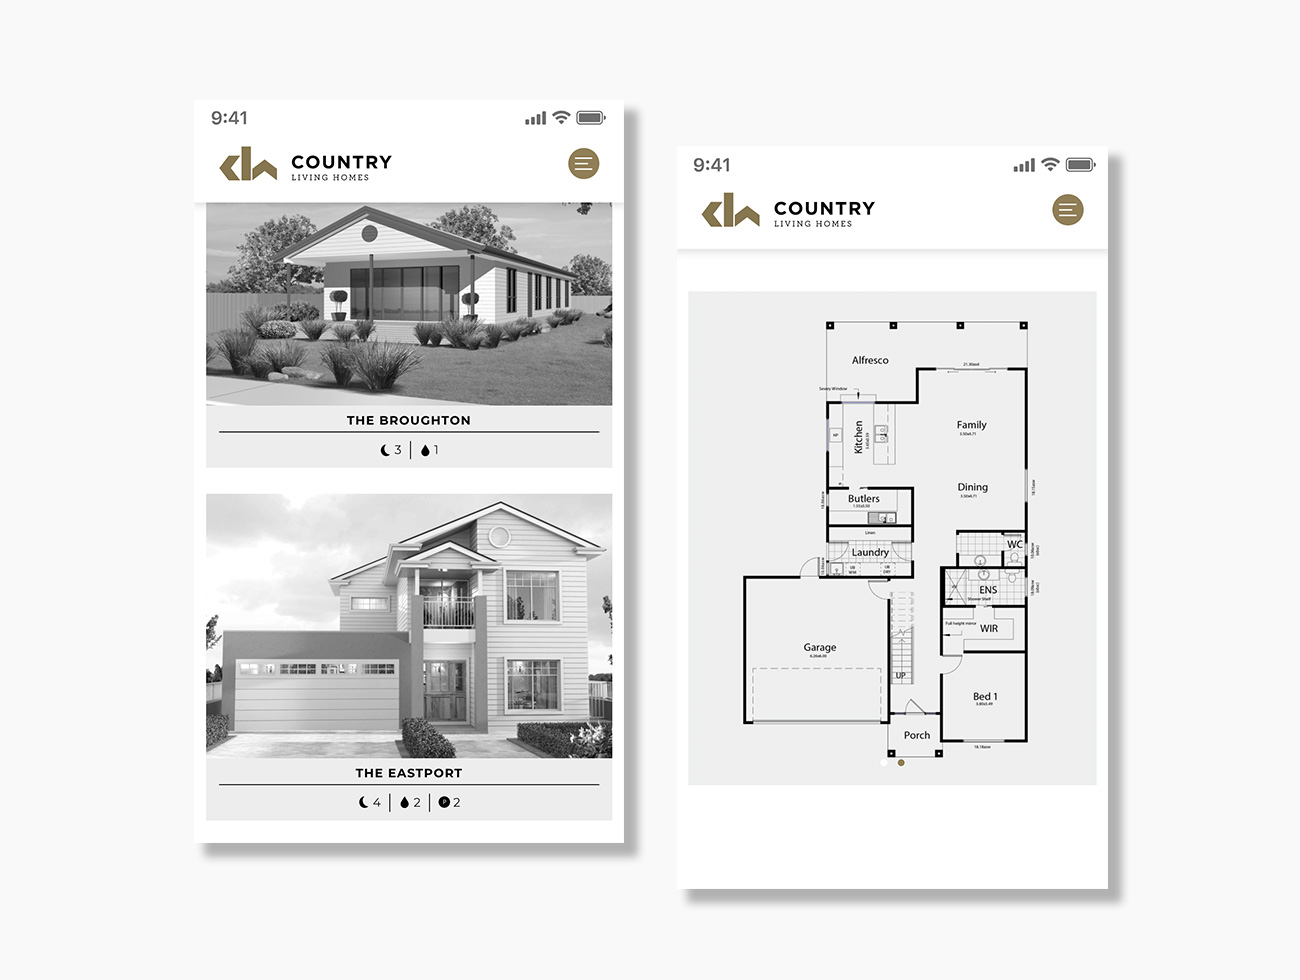 wow-countrylivinghomes-website-3